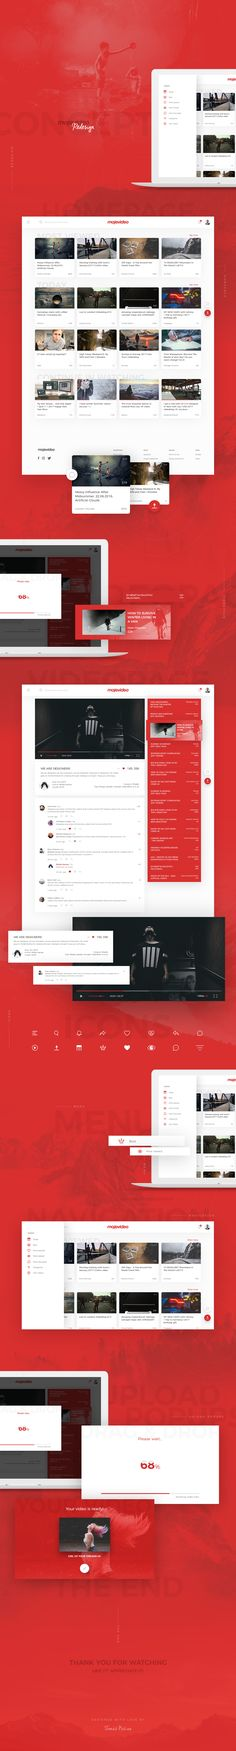 """Check out my @Behance project: """"Redesign Concept 